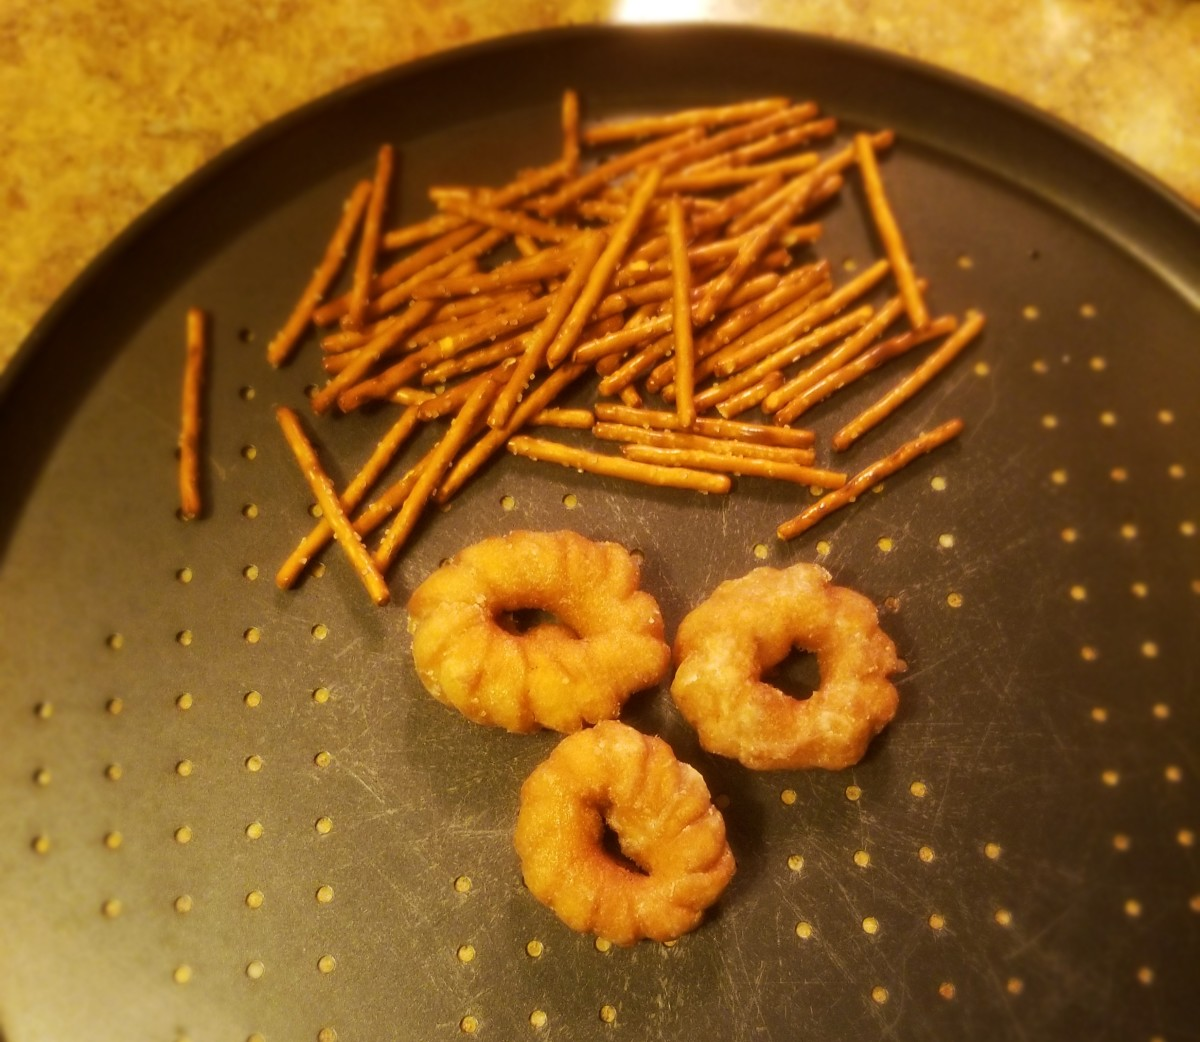 Lay out donuts and pretzels.